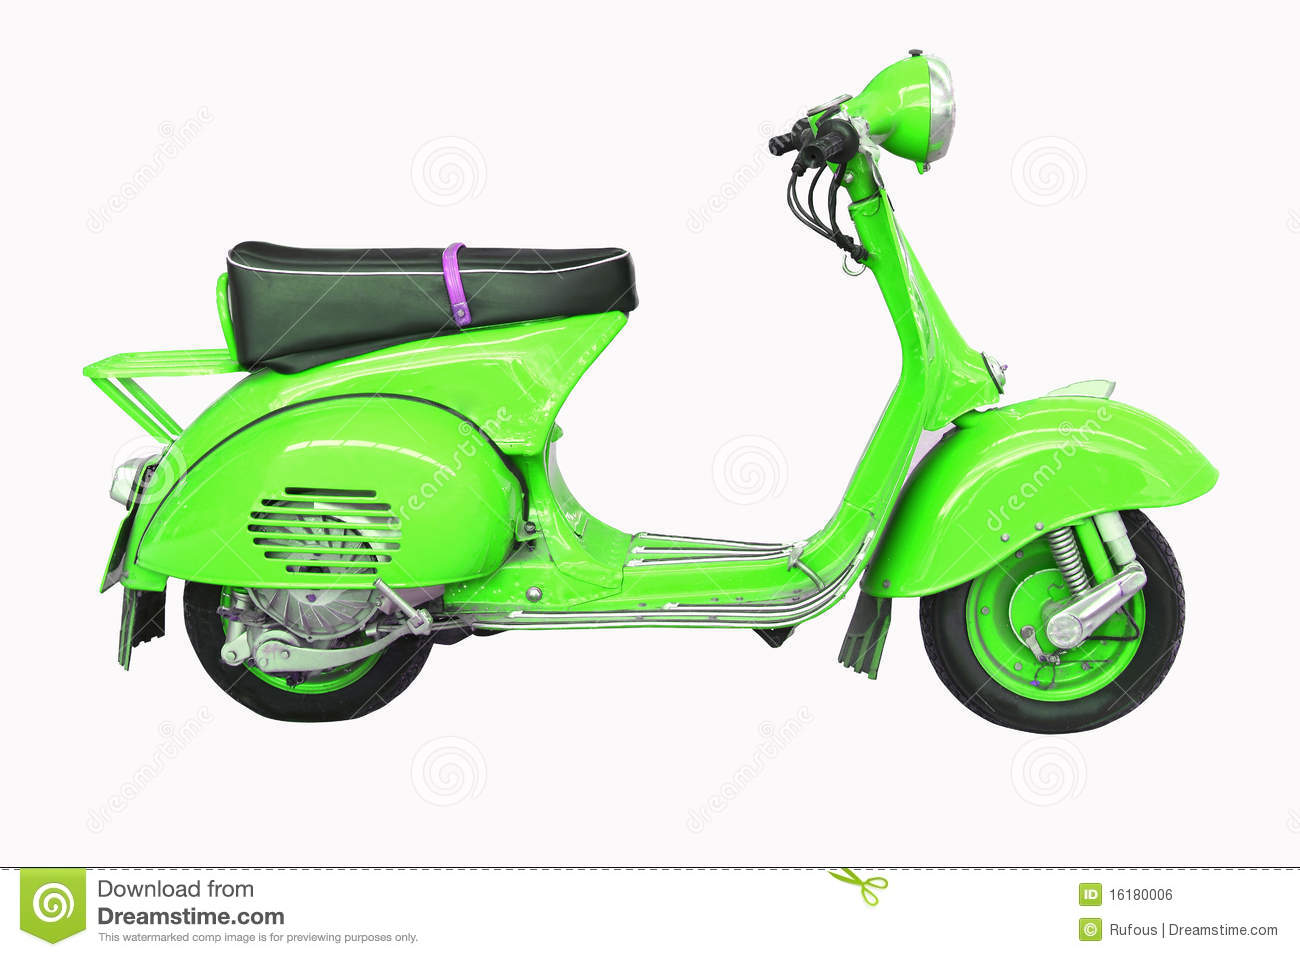 Vintage Vespa On A White Background Stock Photo - Image of vespa